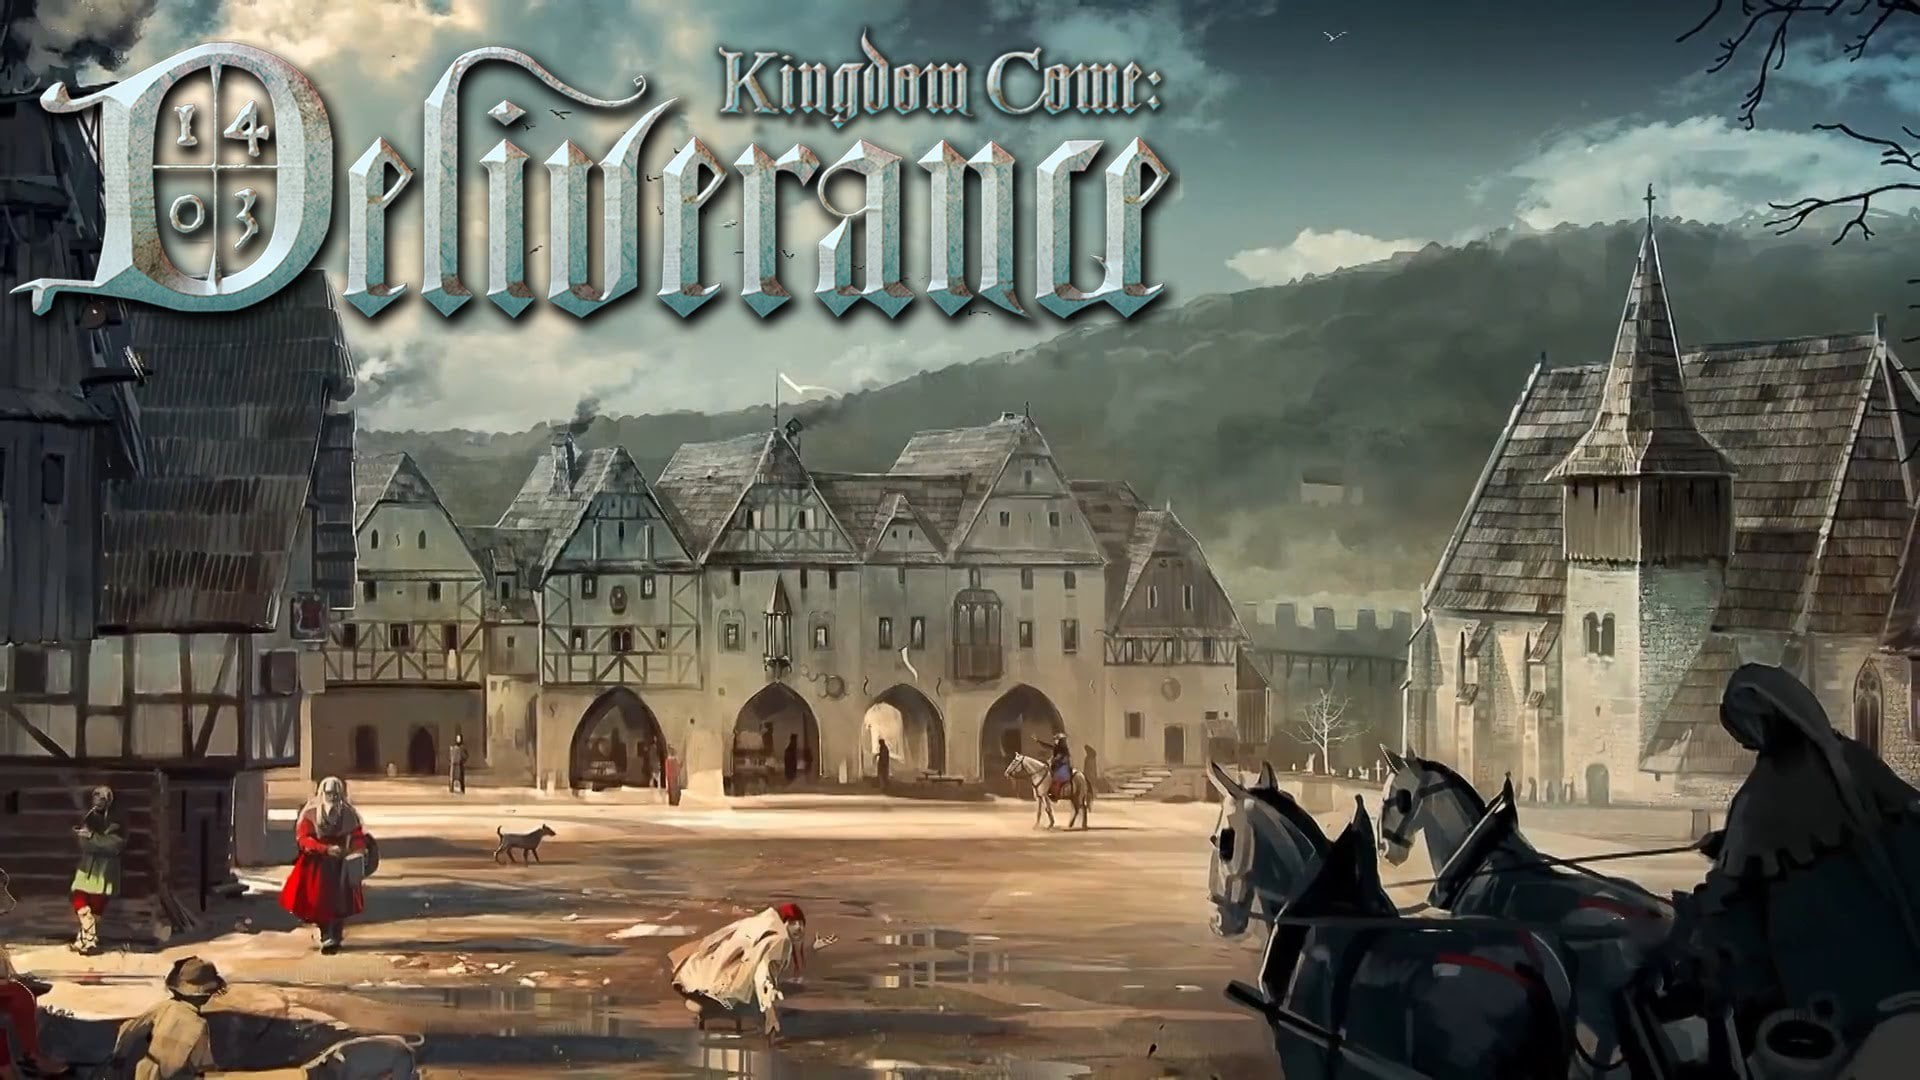 Kingdom Come: Deliverance Activation Key + Crack PC Game Free Download